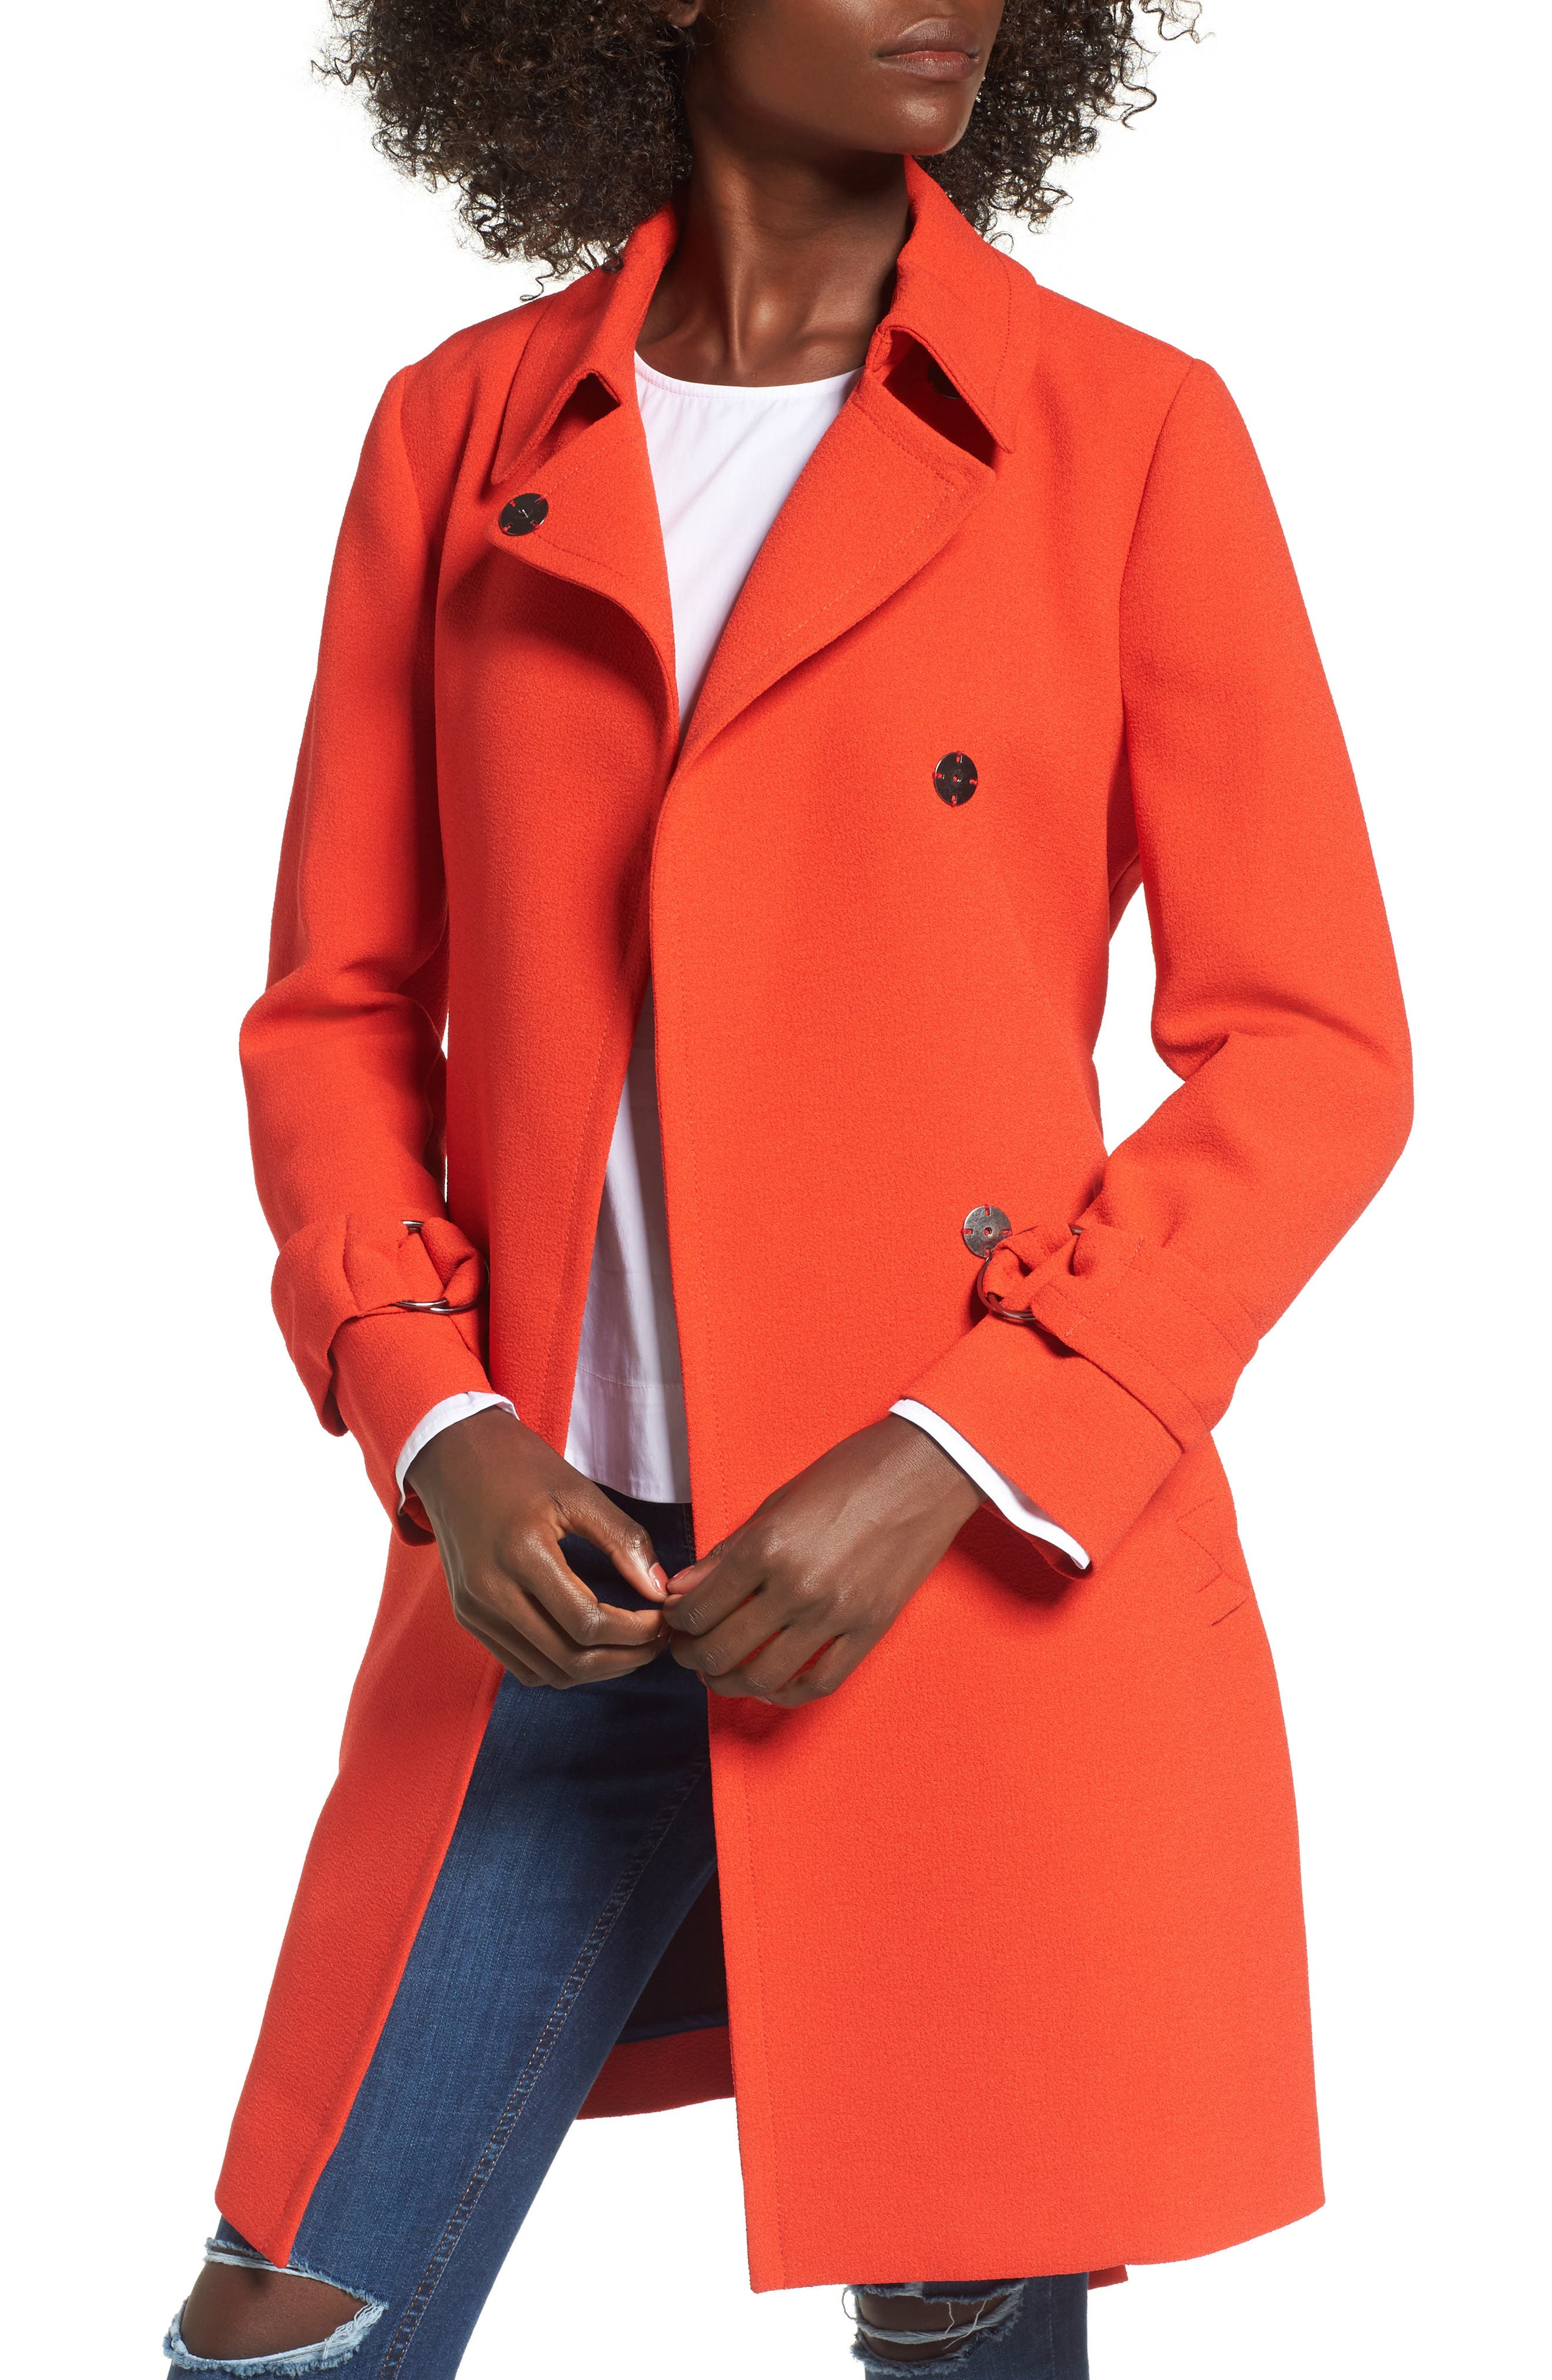 Topshop Daisy Crepe Truster Trench Coat